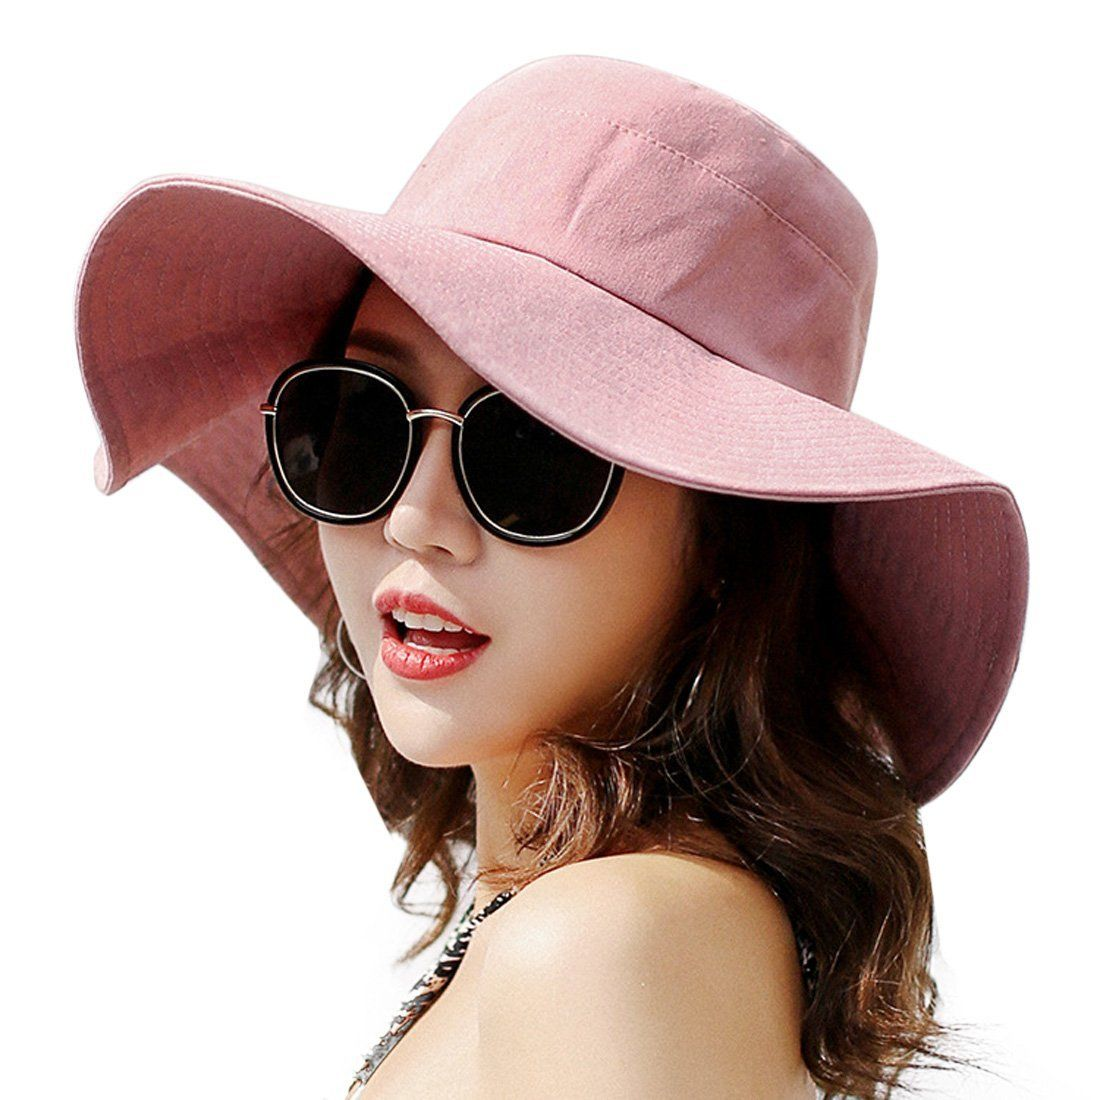 df072c479a3 HUAMULAN Women Sun Hat Summer Beach Floppy Cotton Cap Wide Brim UPF 50 Chin  Cord at Amazon Women s Clothing store